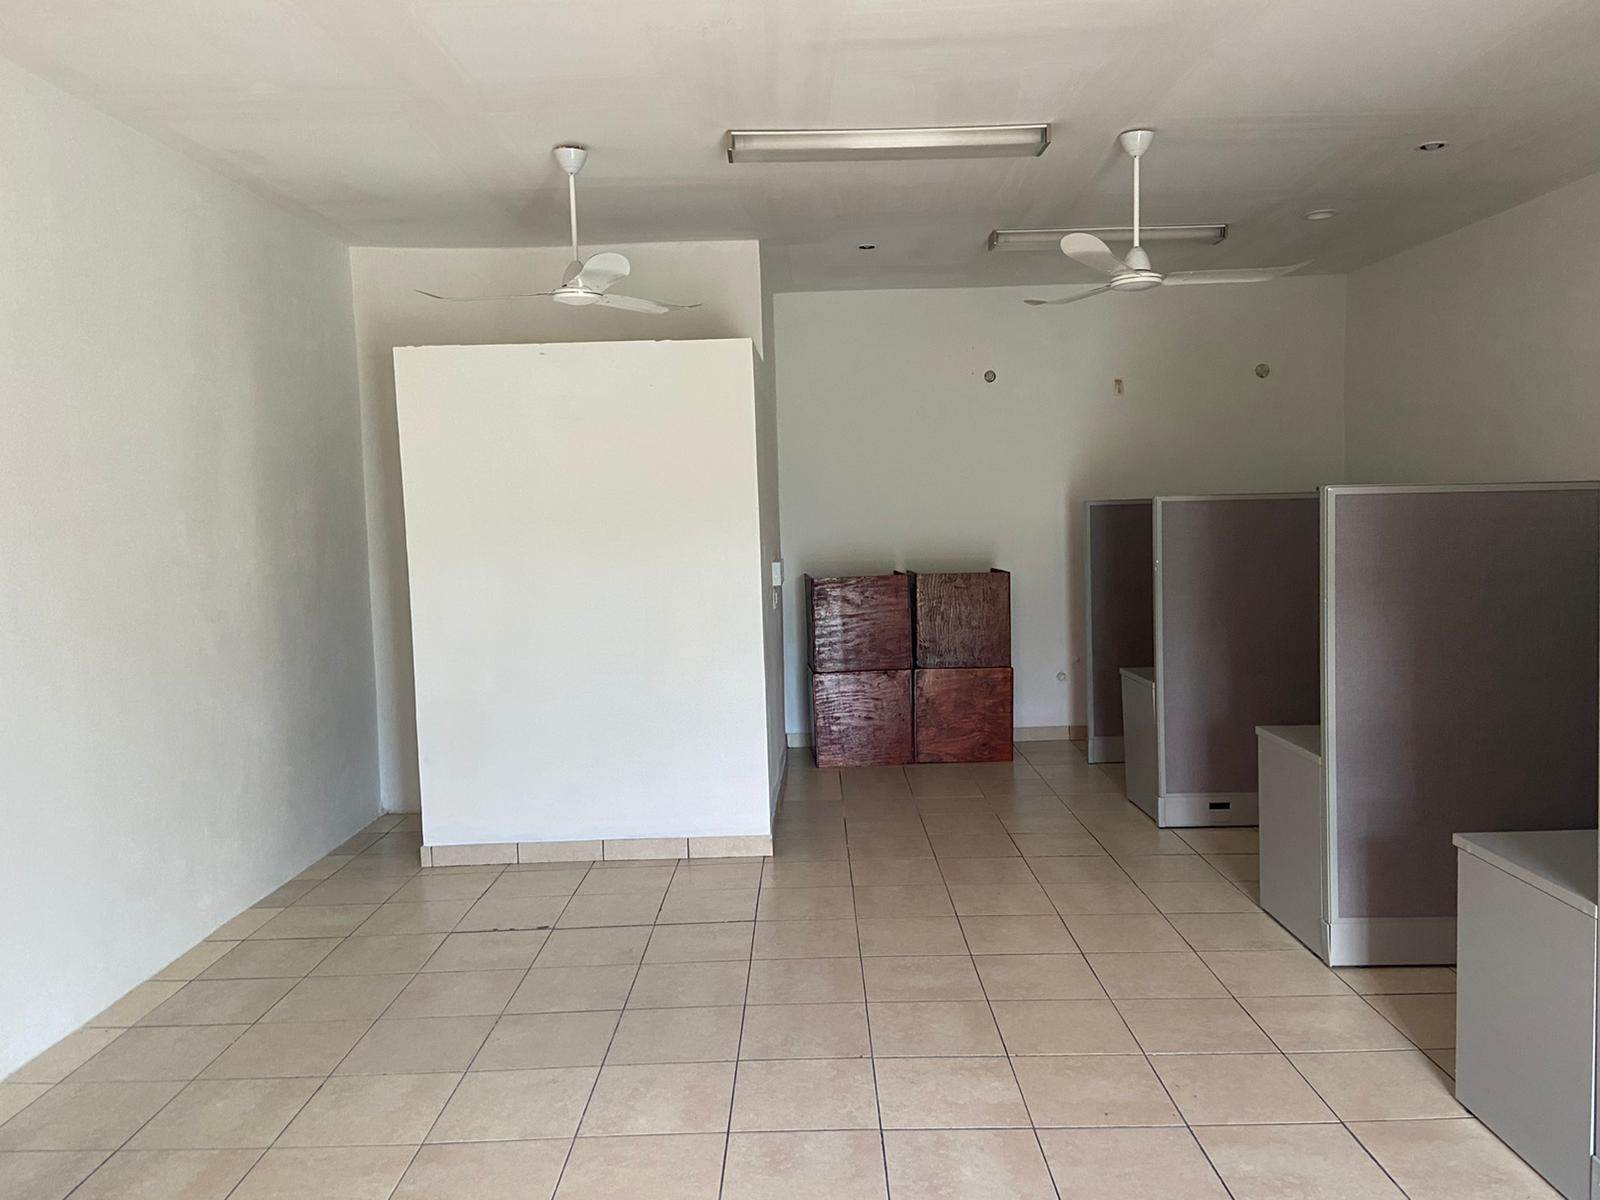 Commercial for Rent at Fire Trail Business Rental - MLS 43082 Fire Trail Road, Nassau And Paradise Island, Bahamas